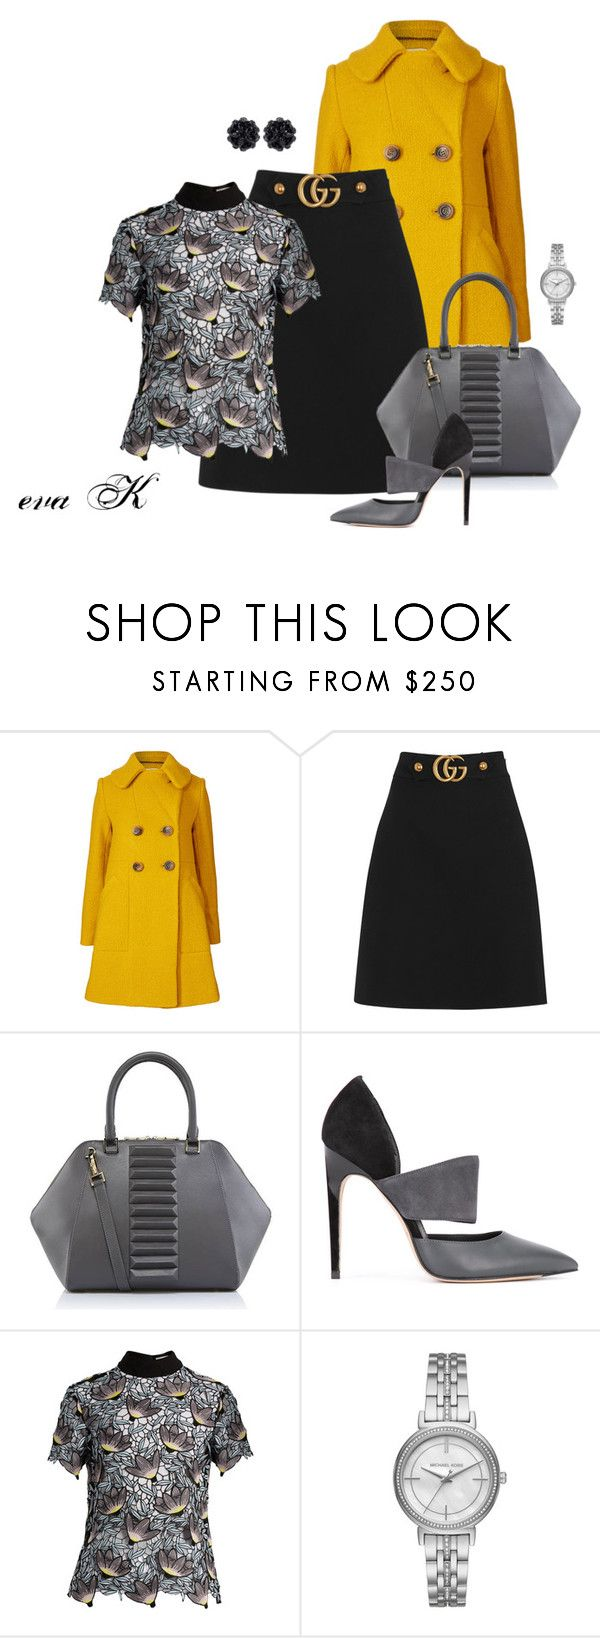 """""""3 colors challenge: Black, Gray and Yellow"""" by eva-kouliaridou ❤ liked on Polyvore featuring Orla Kiely, Gucci, Kristina George, Calvin Klein, self-portrait, Michael Kors and Simone Rocha"""